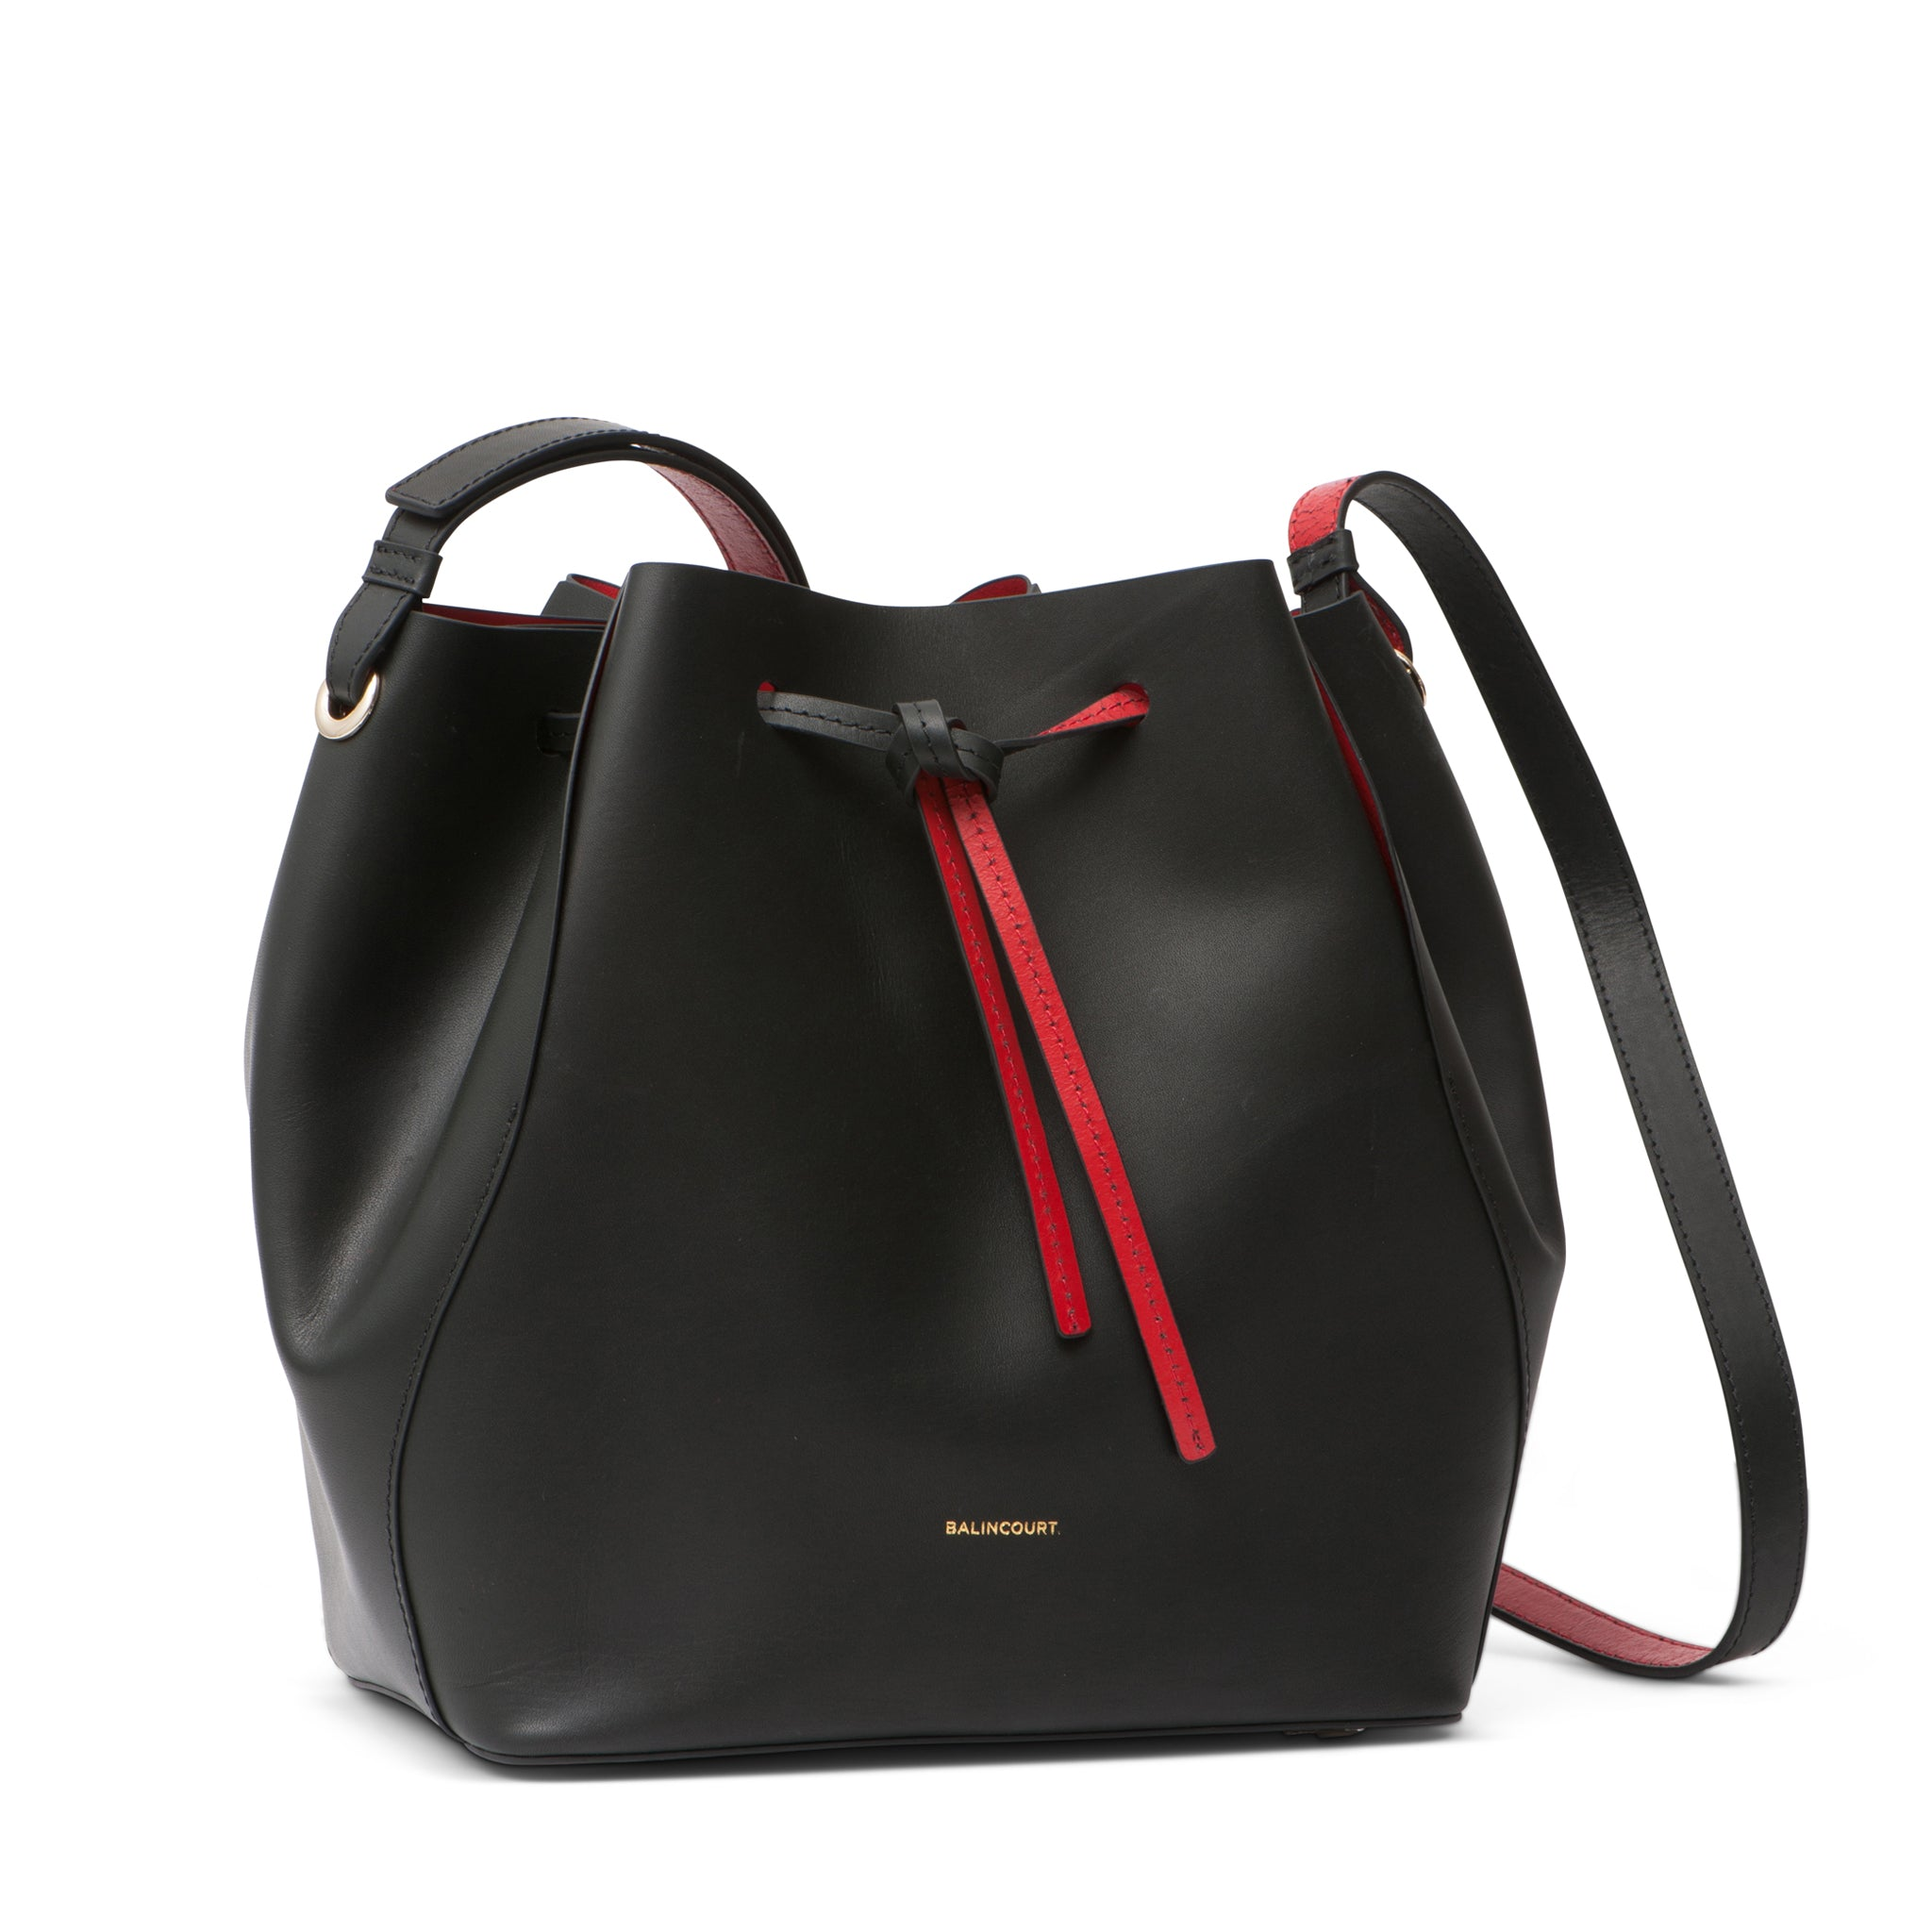 Balincourt Ladies Leather Bucket Bag